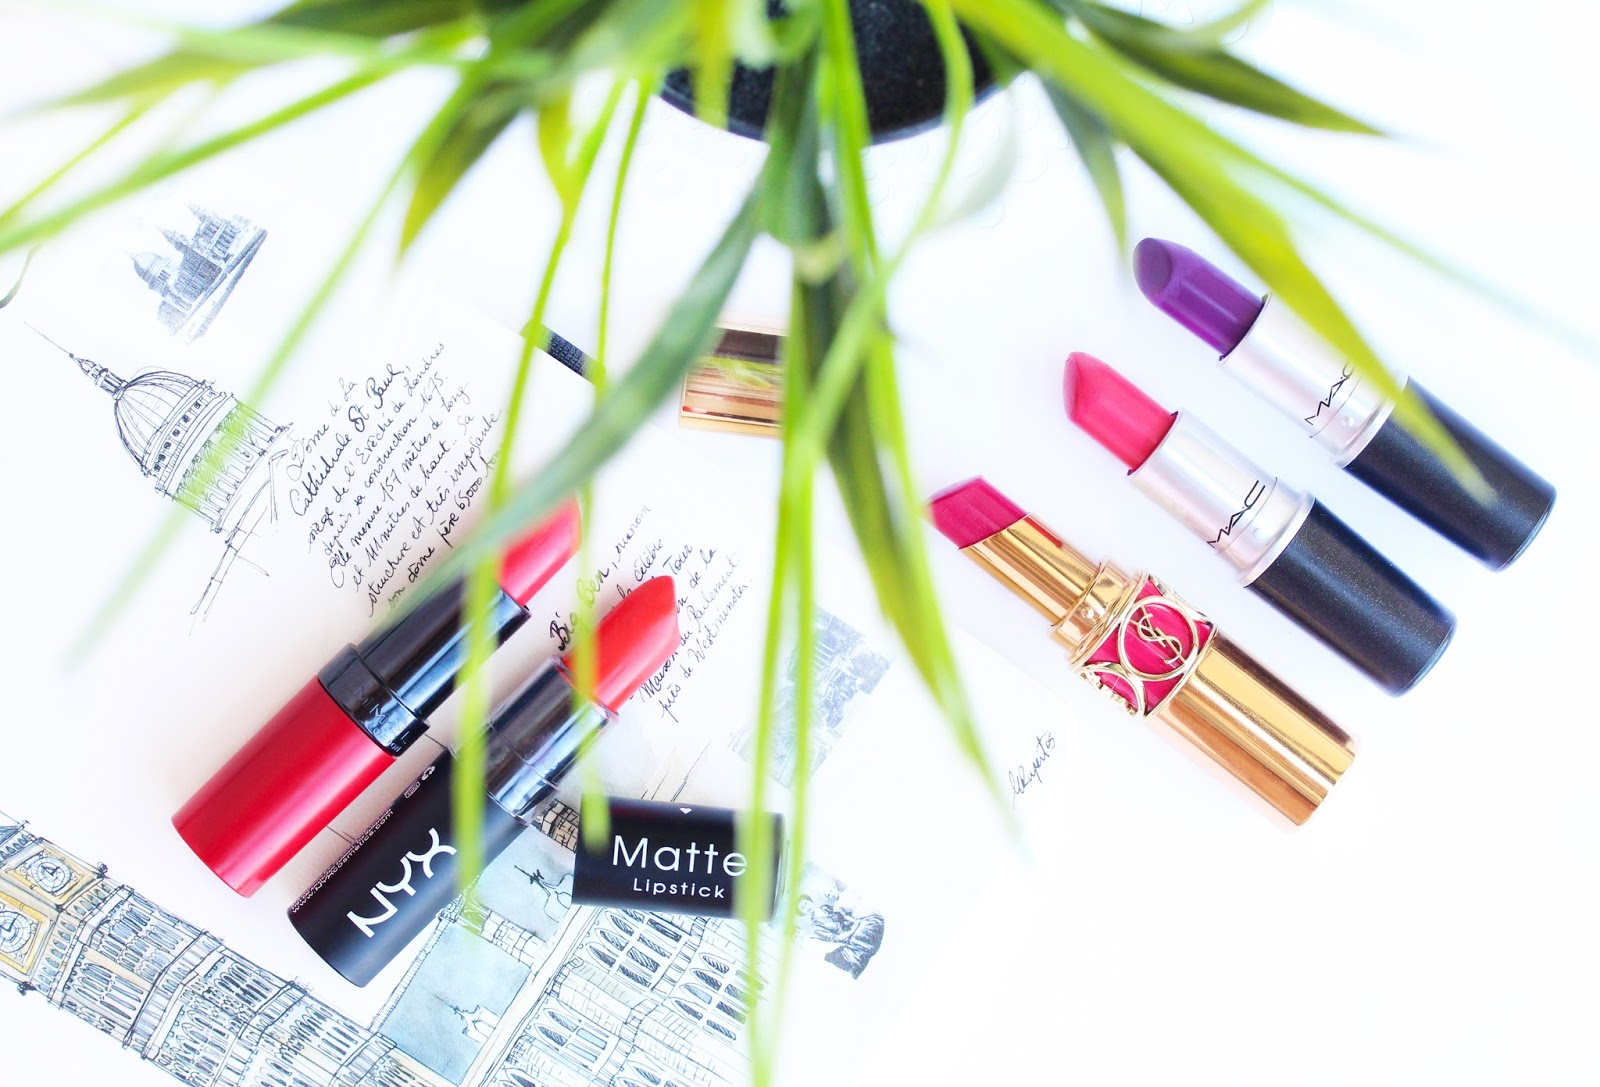 Top 5 Summer Lipsticks